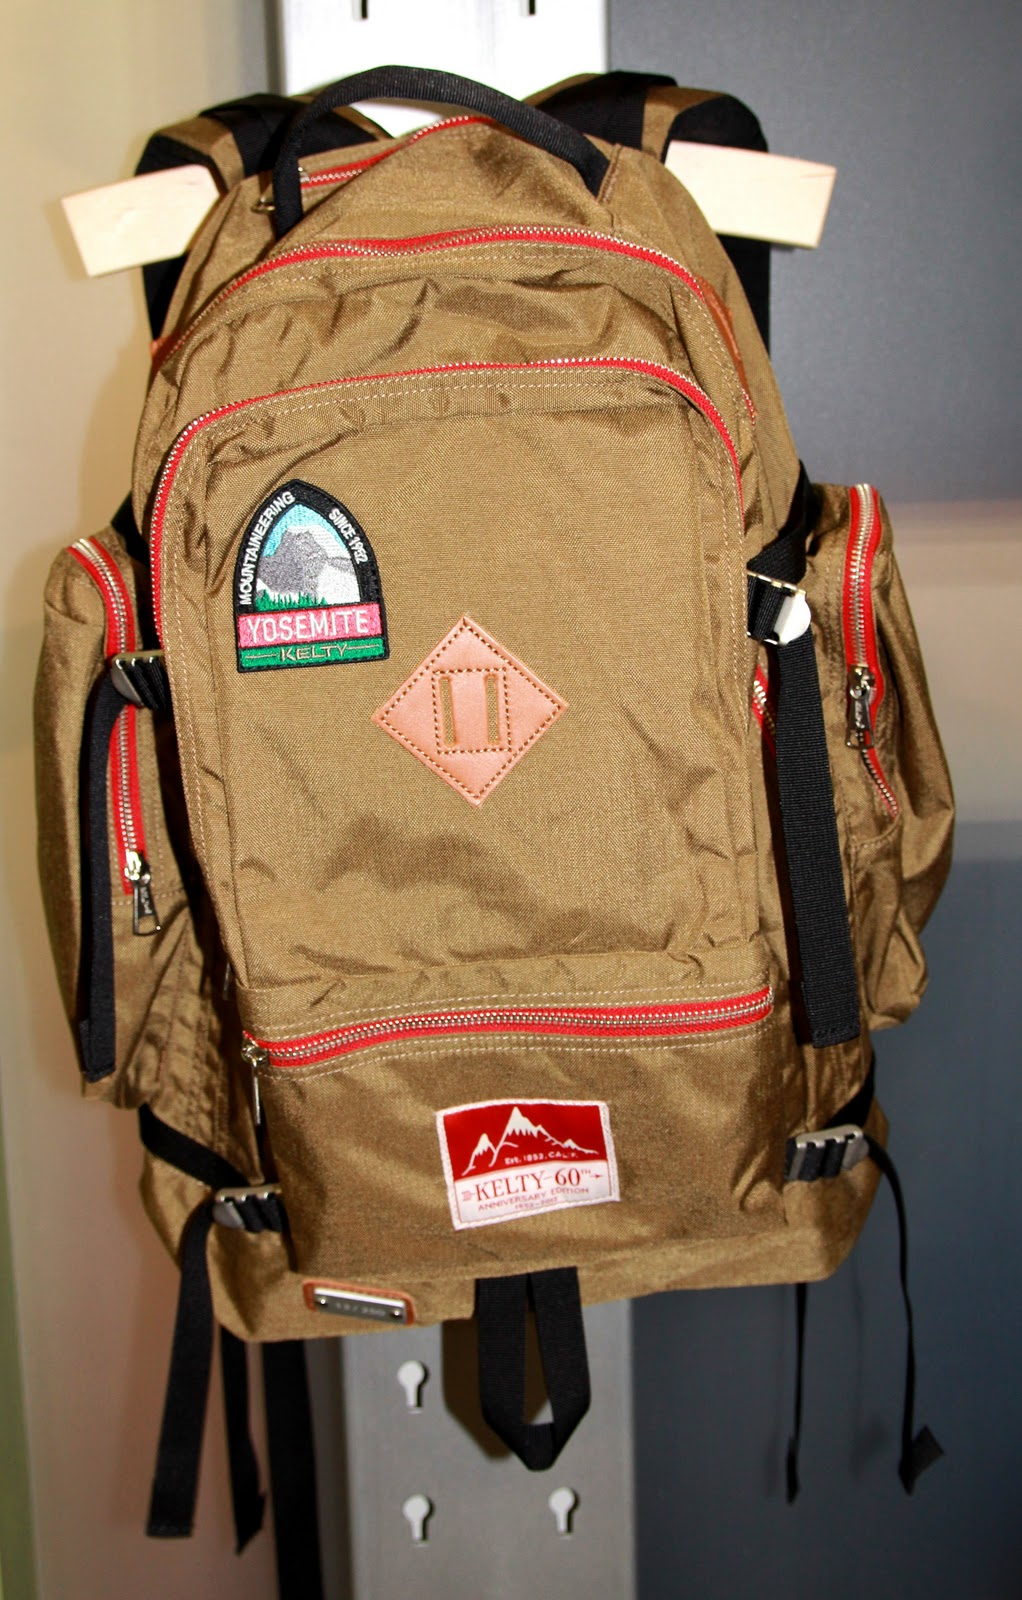 3dce563cf2d 60th Anniversary Backpack Limited Edition $150